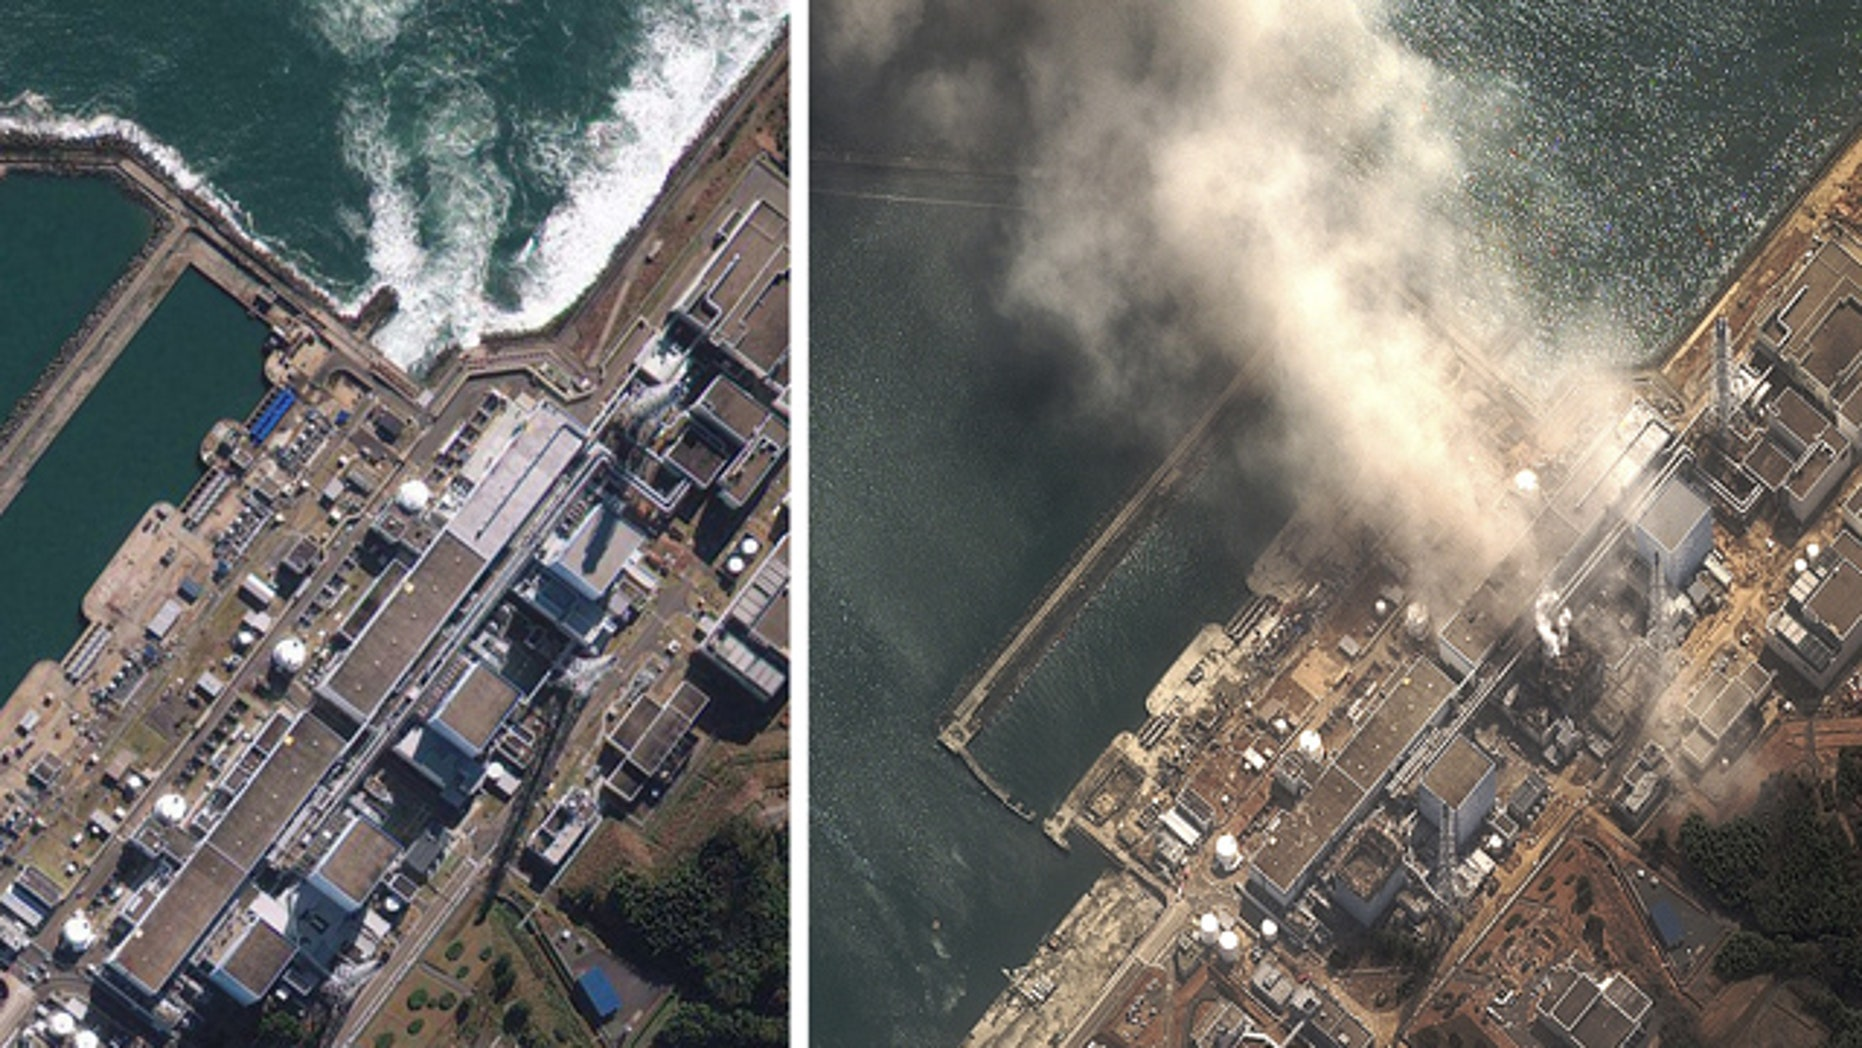 In this file photo combo, the Fukushima Dai-ichi nuclear complex in Japan is shown on Nov. 15, 2009 in a satellite image provided by GeoEye, left, and on Monday, March 14, 2011 in a satellite image provided by DigitalGlobe.